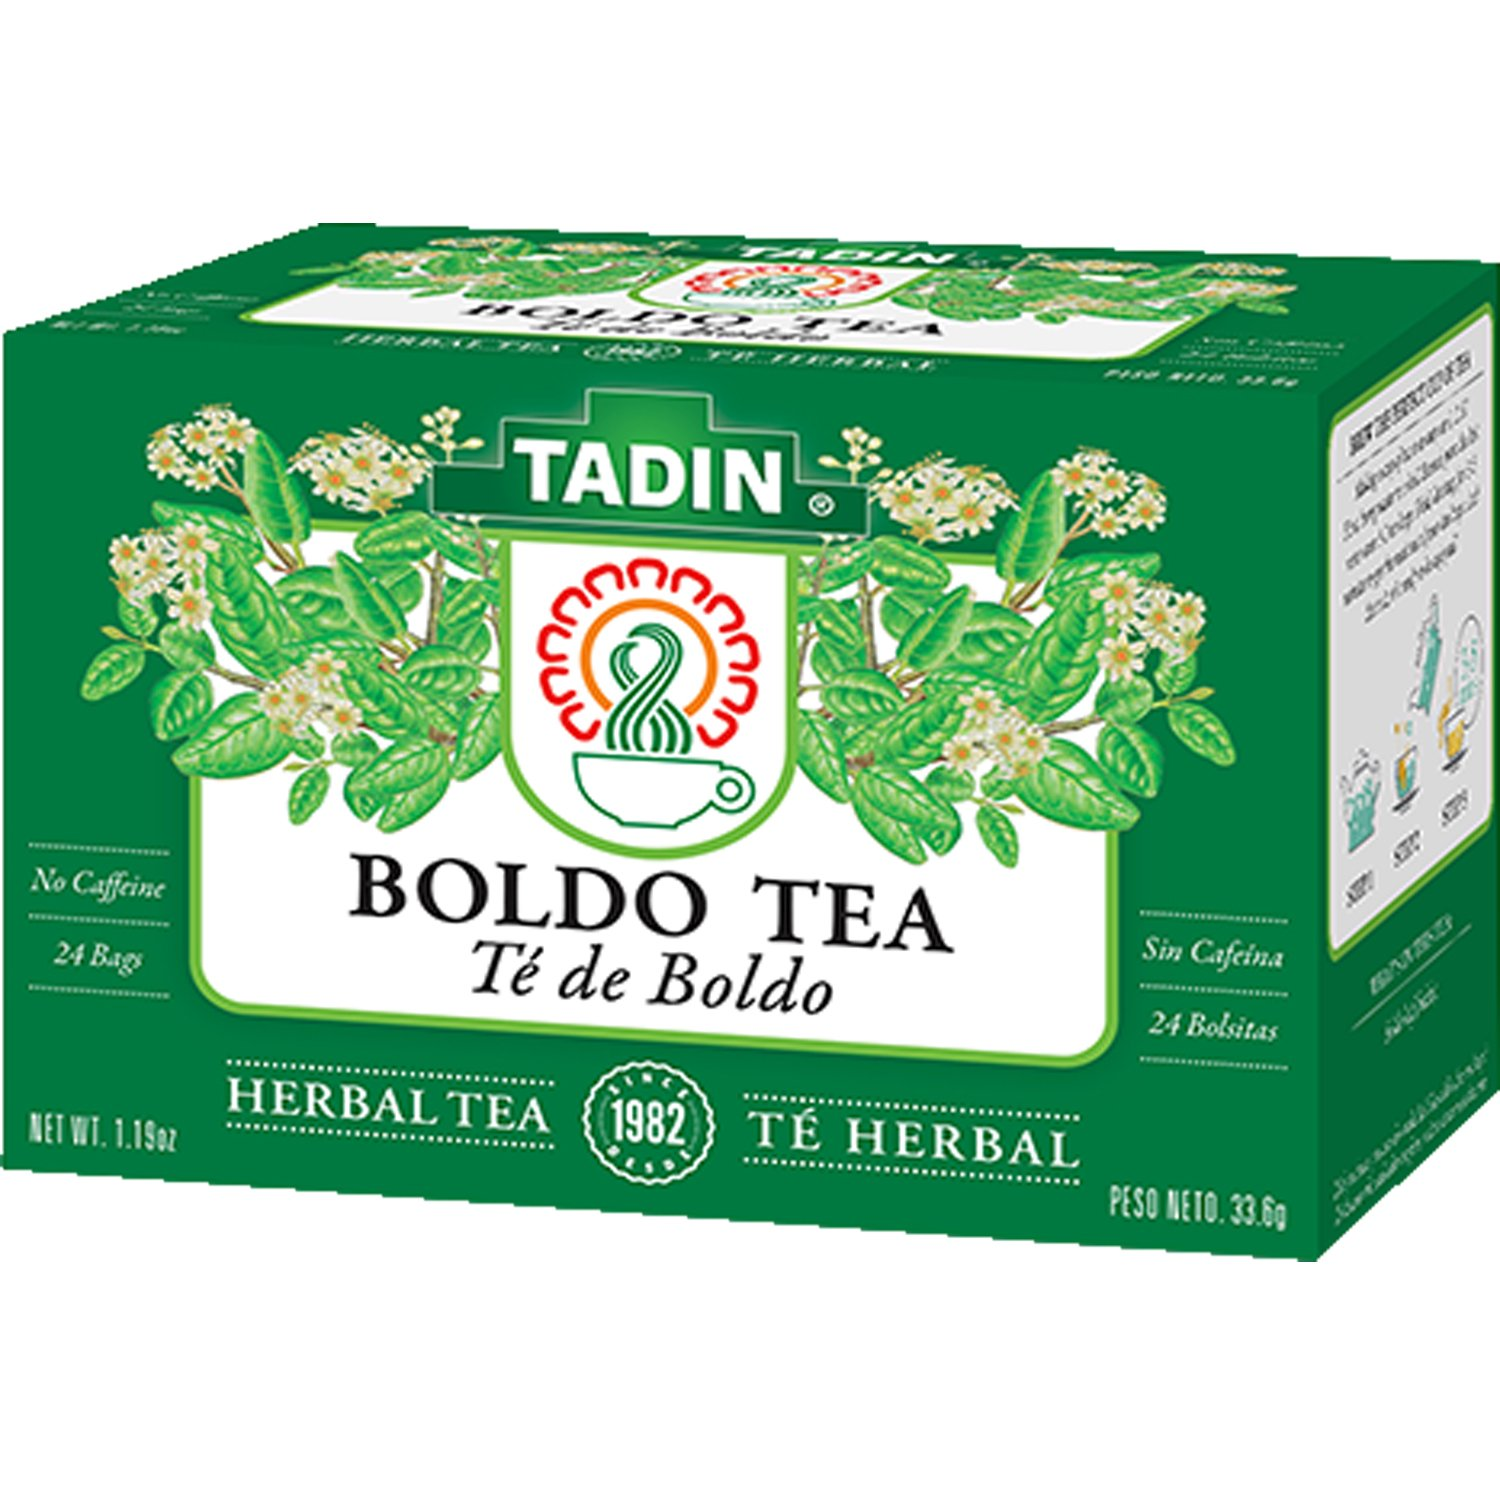 Tadin Boldo Herbal Tea (24 Teabags)